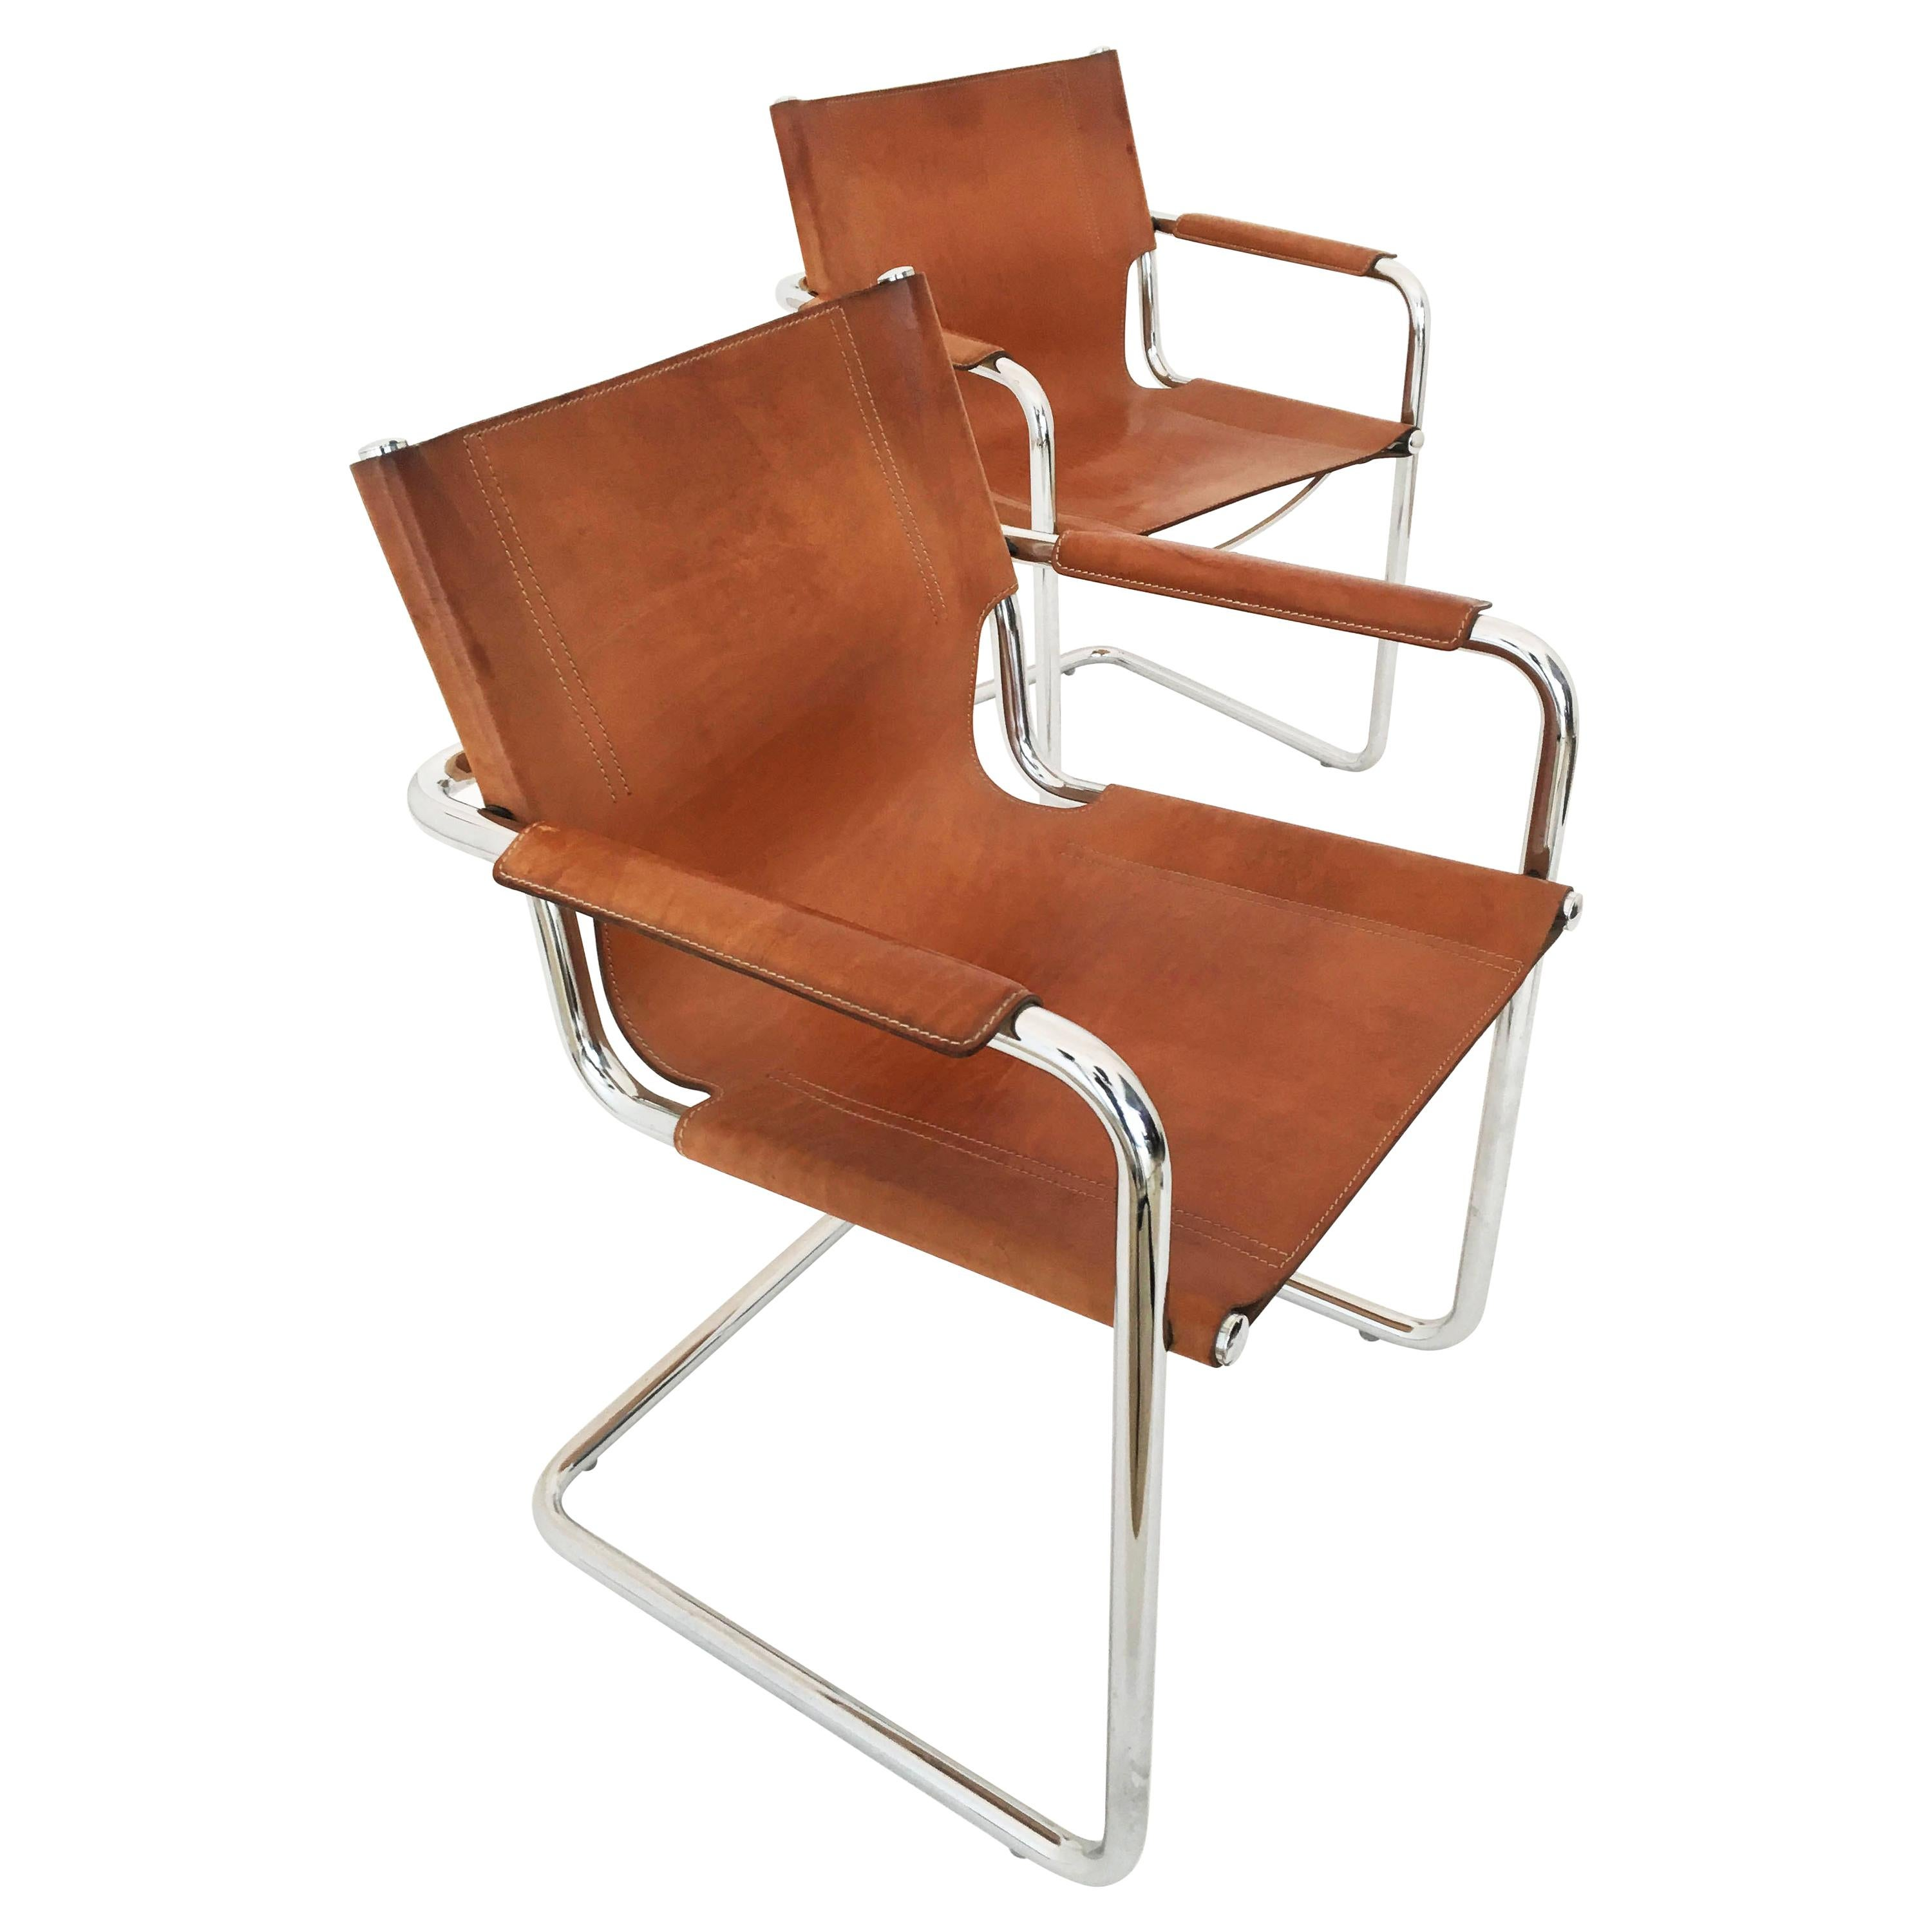 Matteo Grassi Model 'Visitor' Chairs in Patinated Cognac Leather, Italy 1970s